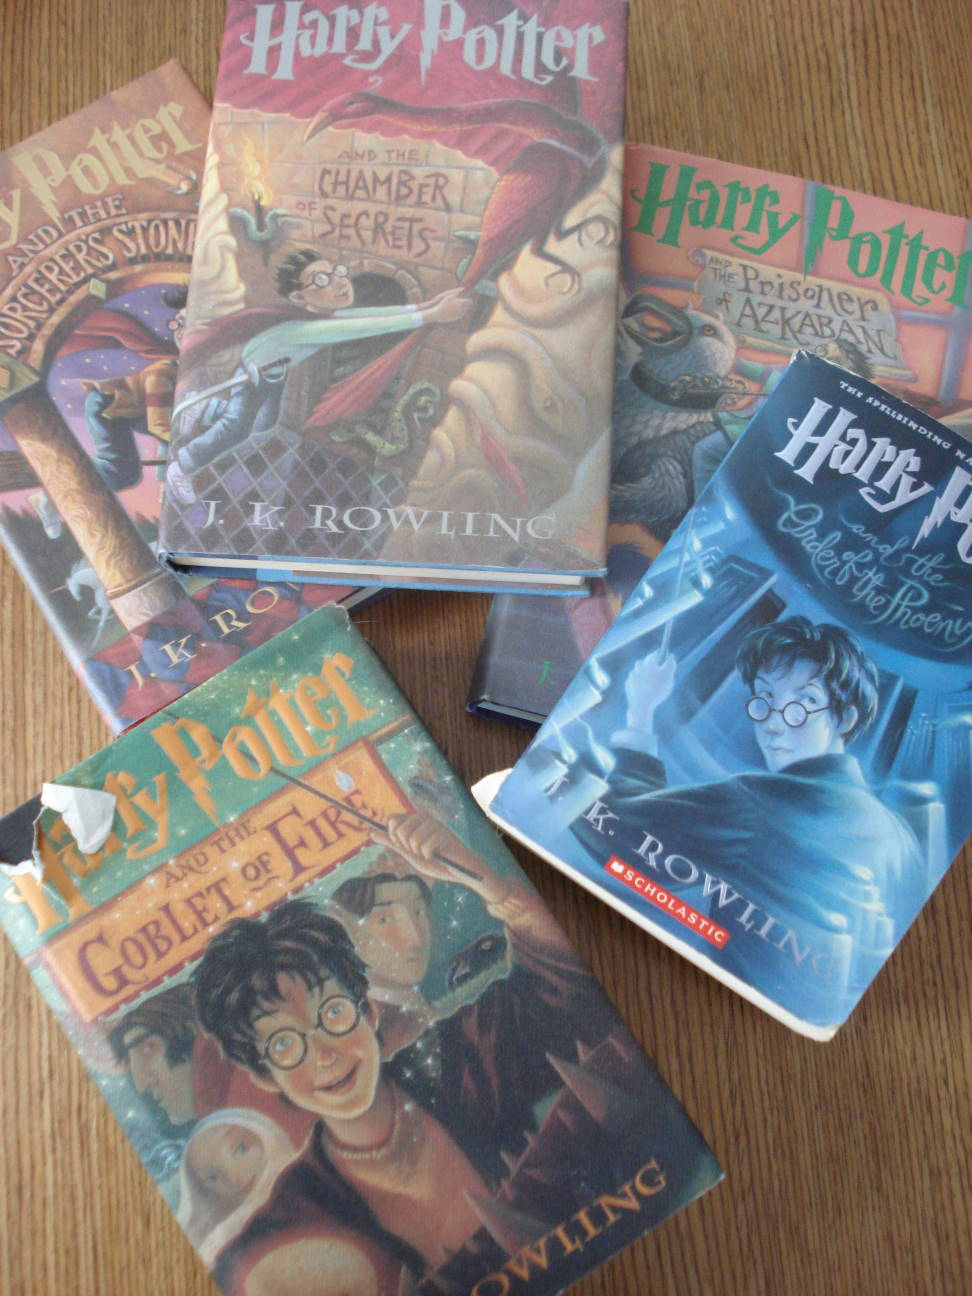 First five Harry Potter books, photo by Mary Warner, November 21, 2016.